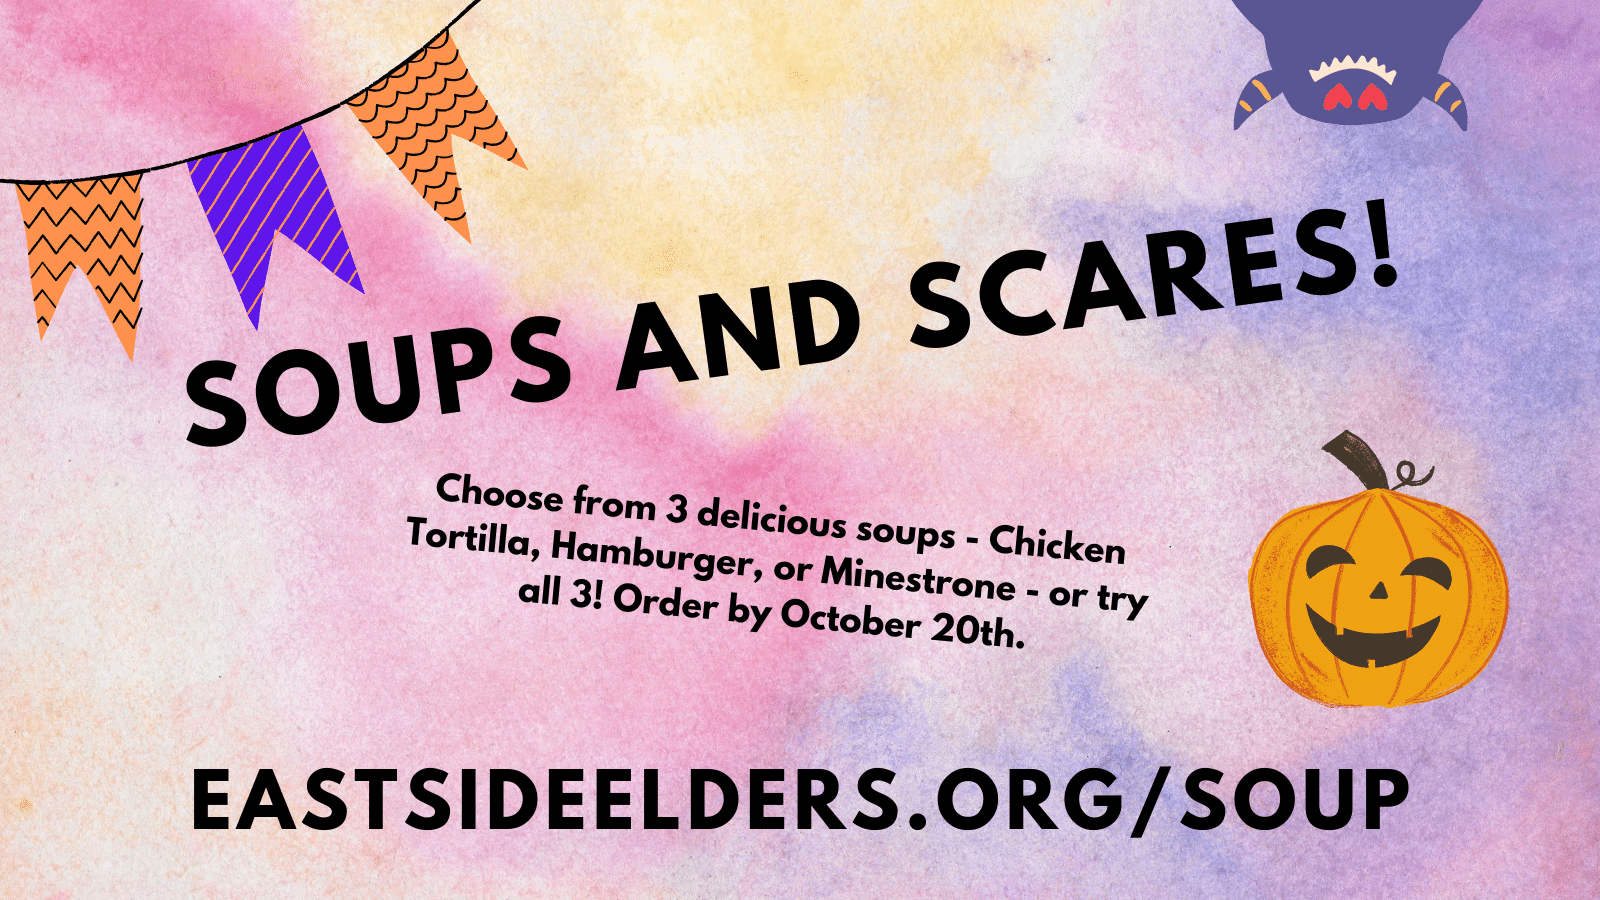 Image promoting the Soups and Scares fundraiser. Pumpkin, bunting, and a purple monster on a colorful background. Text reads: Soup and Scares! Choose from 3 delicious soups - Chicken tortilla, hamburger, or minestrone - or try all 3! Order by October 20th. EastSideElders.org/Soup